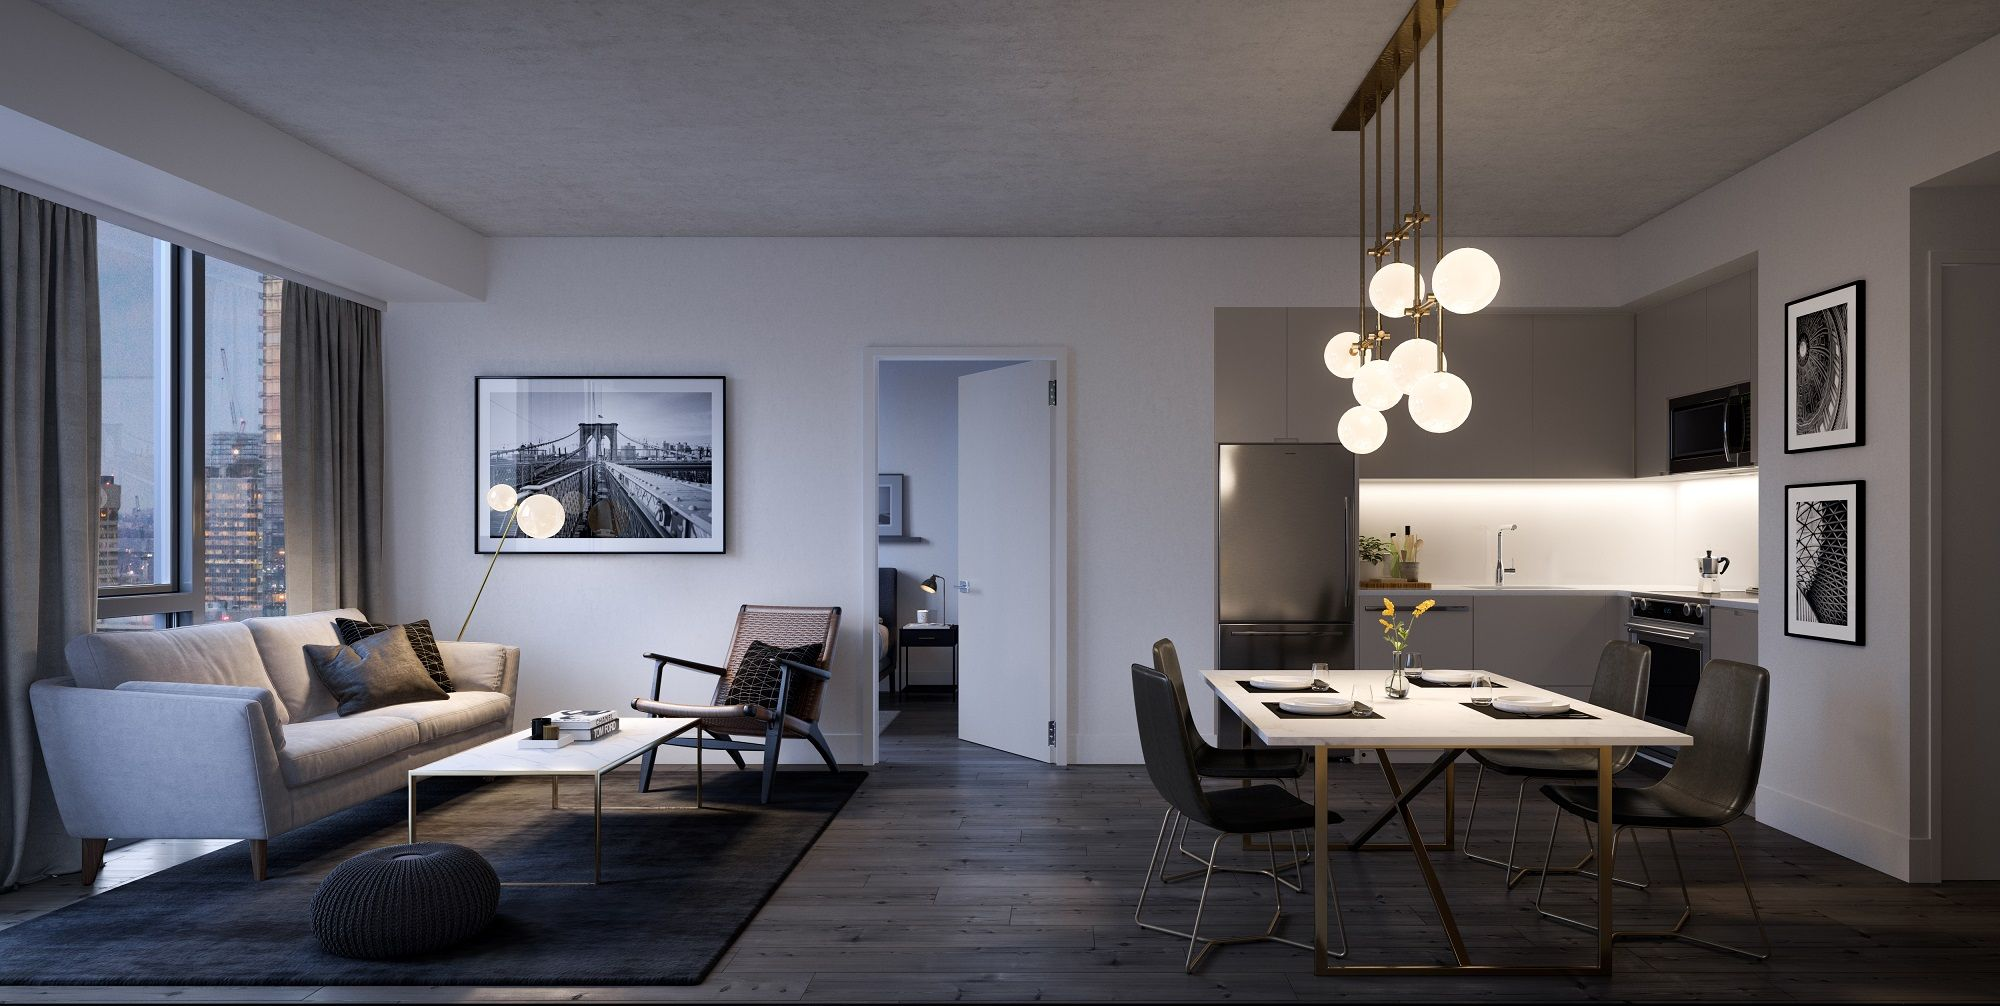 3d Render Of Open Concept Dining Room Kitchen And Living Area